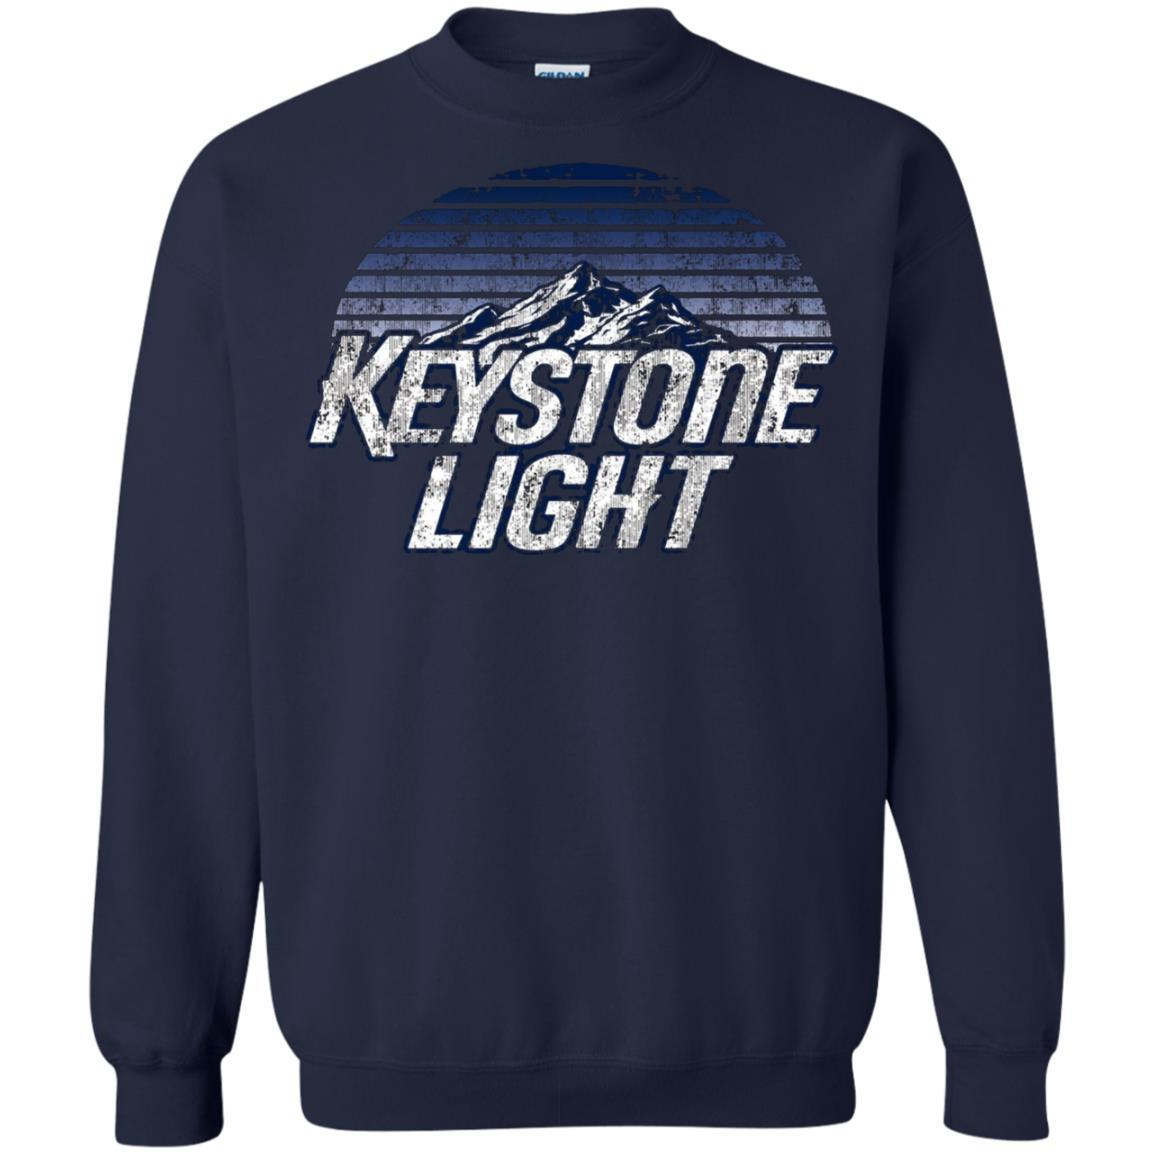 Keystone Light Beer Classic Look - Pullover Sweatshirt Navy / 5XL